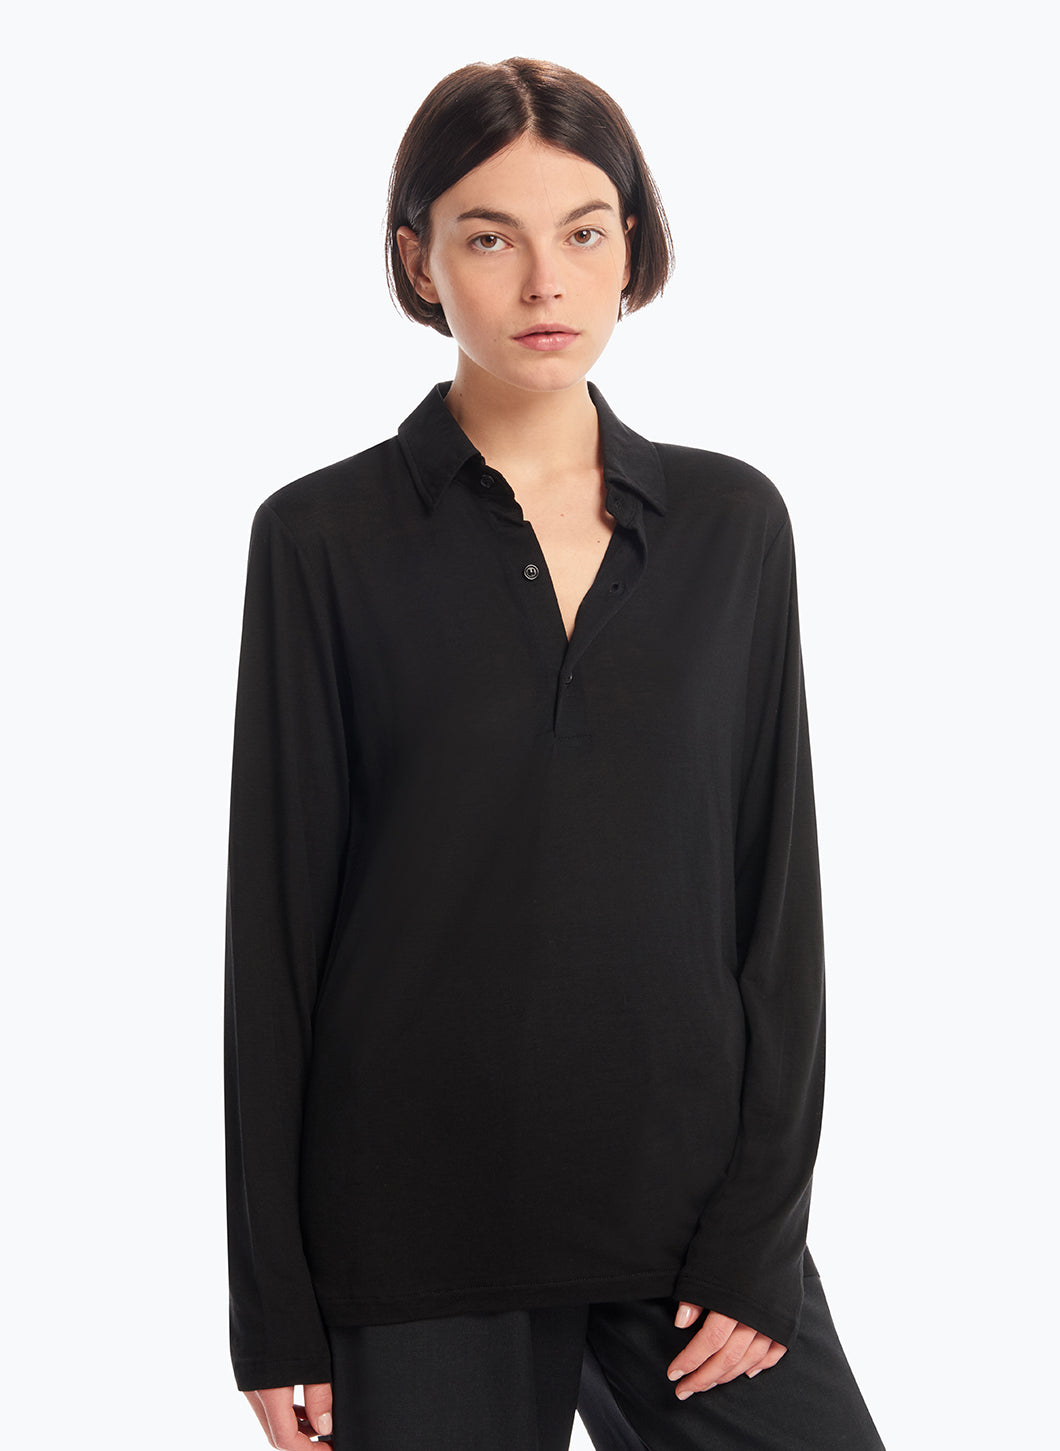 Long Sleeve Poloshirt in Black Tencel